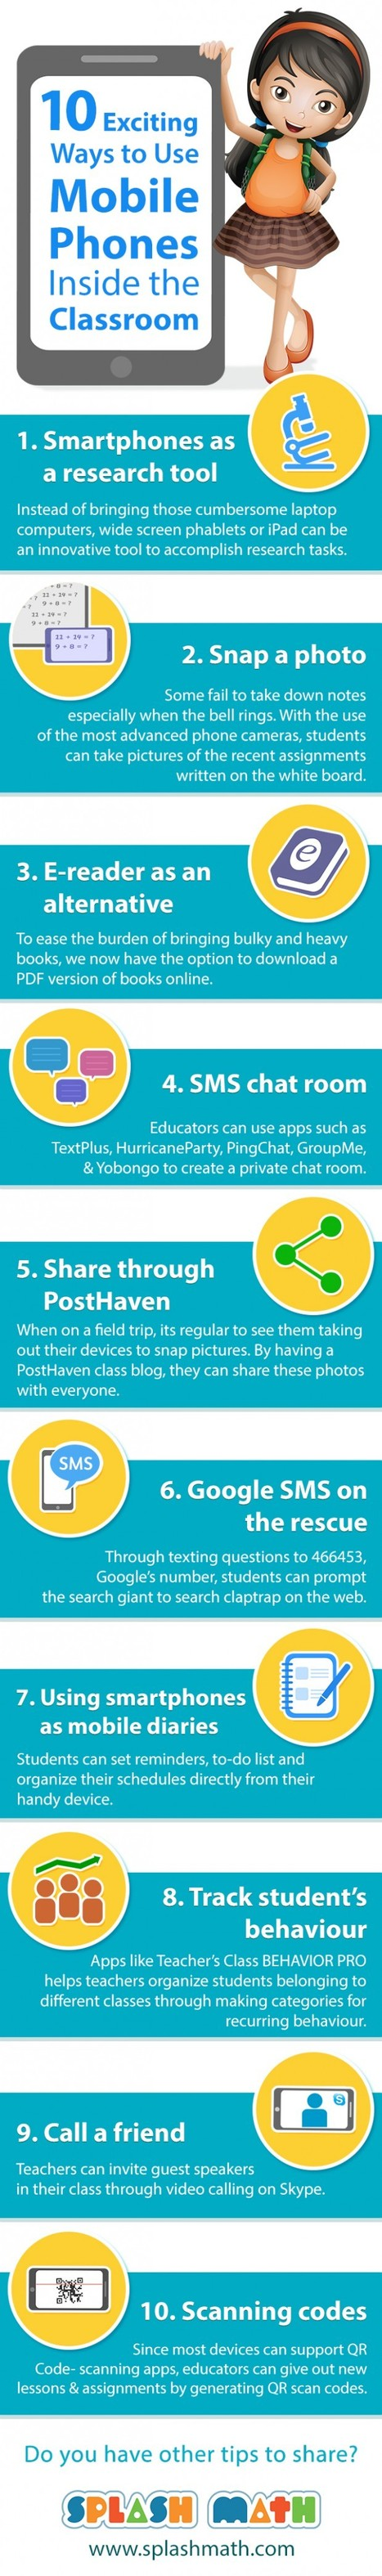 10 Exciting Ways to Use Mobile Phones In the Classroom Infographic | e-Learning Infographics | Educational Technology | Scoop.it